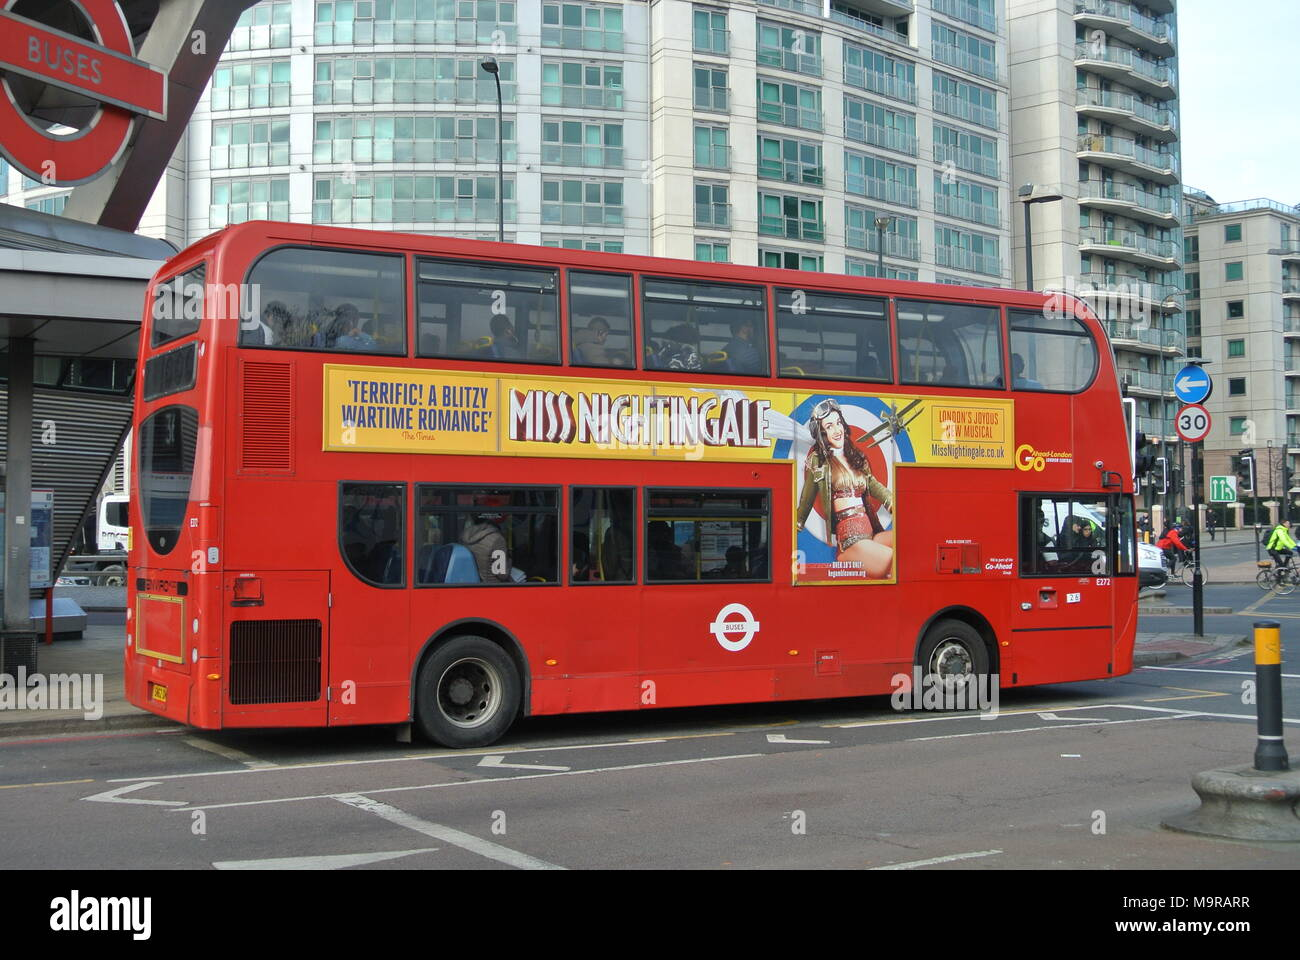 London Bus, the New Routemaster, in Vauxhall Cross, London, England, UK - Stock Image